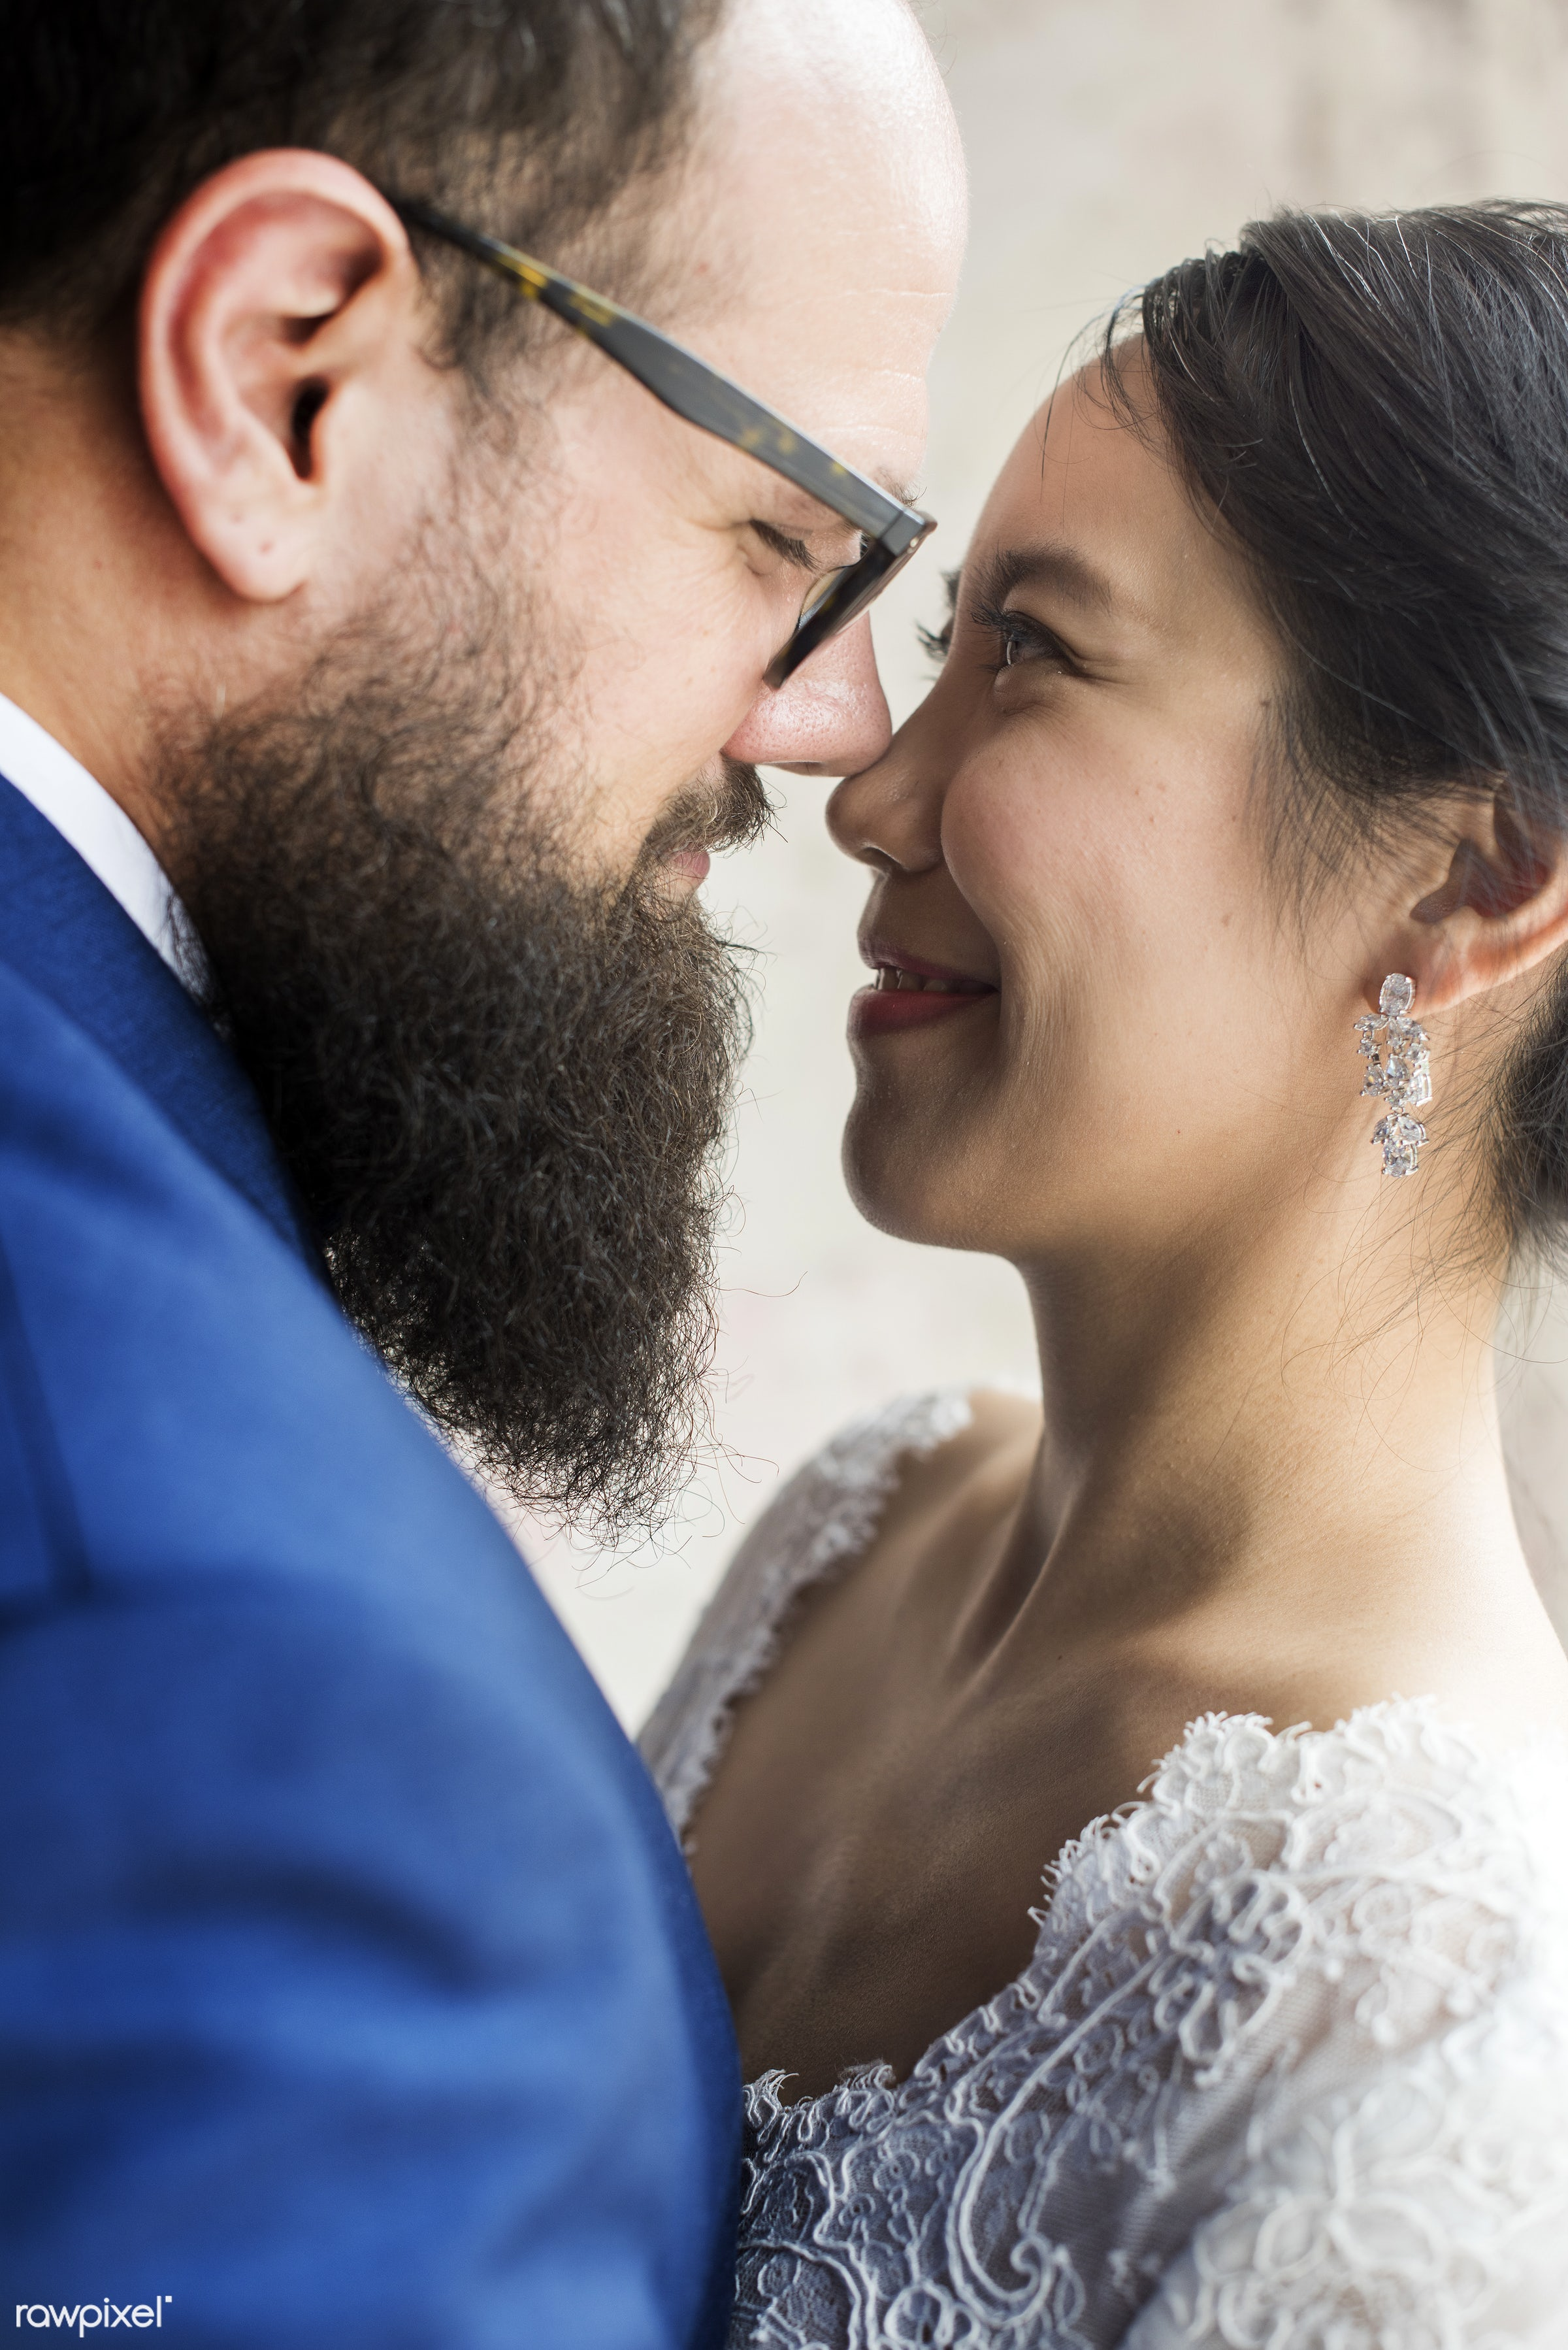 occasion, together, caucasian, asian, love, married, hands, couple, bride, cheerful, smiling, closeup, flower, diversity,...